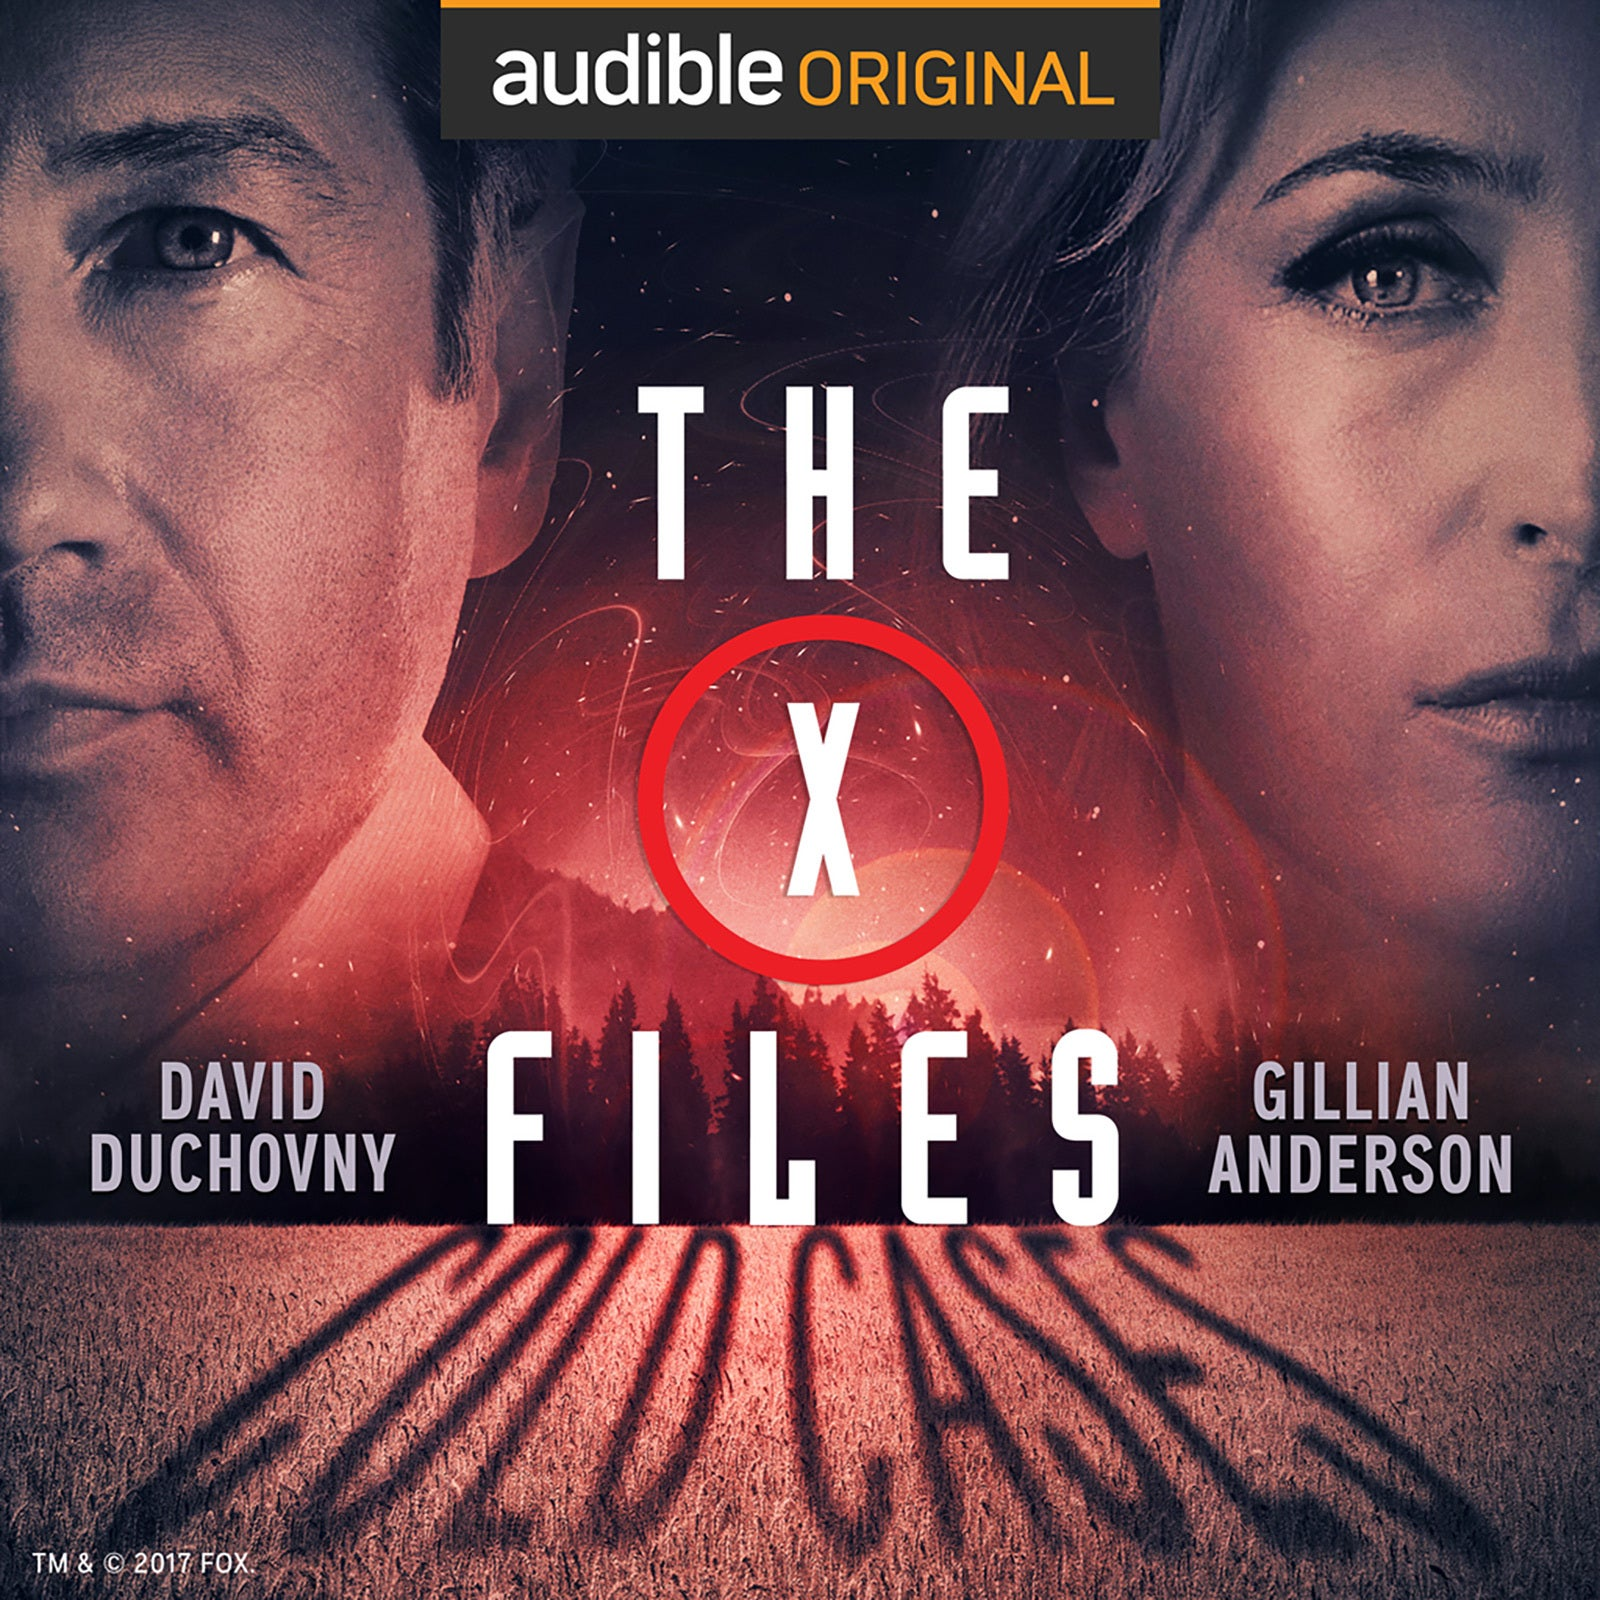 Gillian Anderson, David Duchovny reprise 'X-Files' roles for audiobook